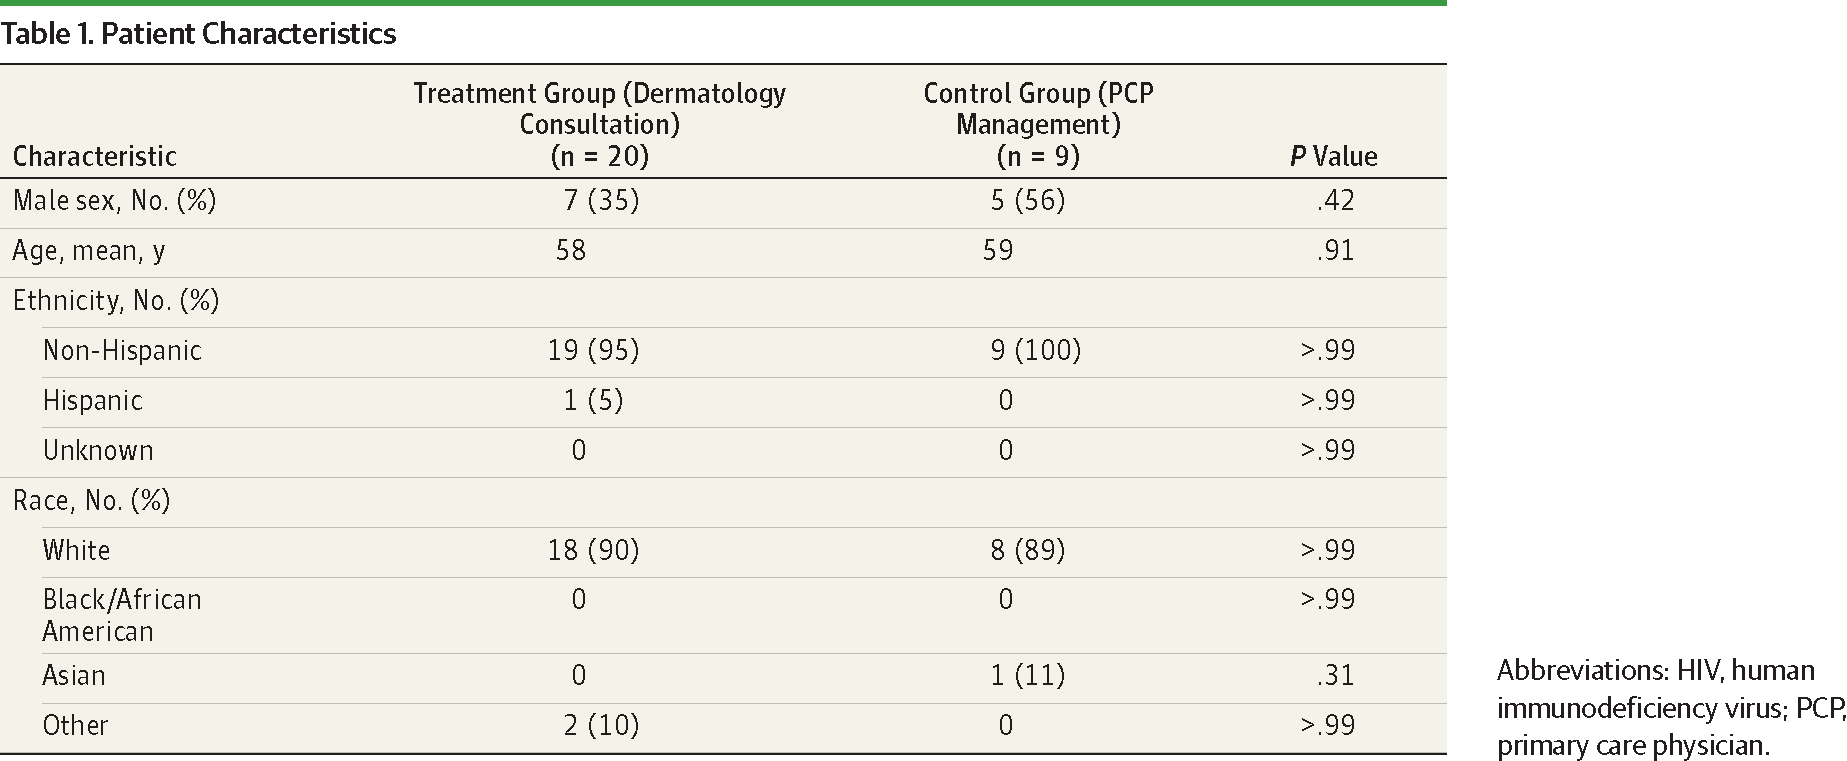 The Impact of Dermatology Consultation on Diagnostic